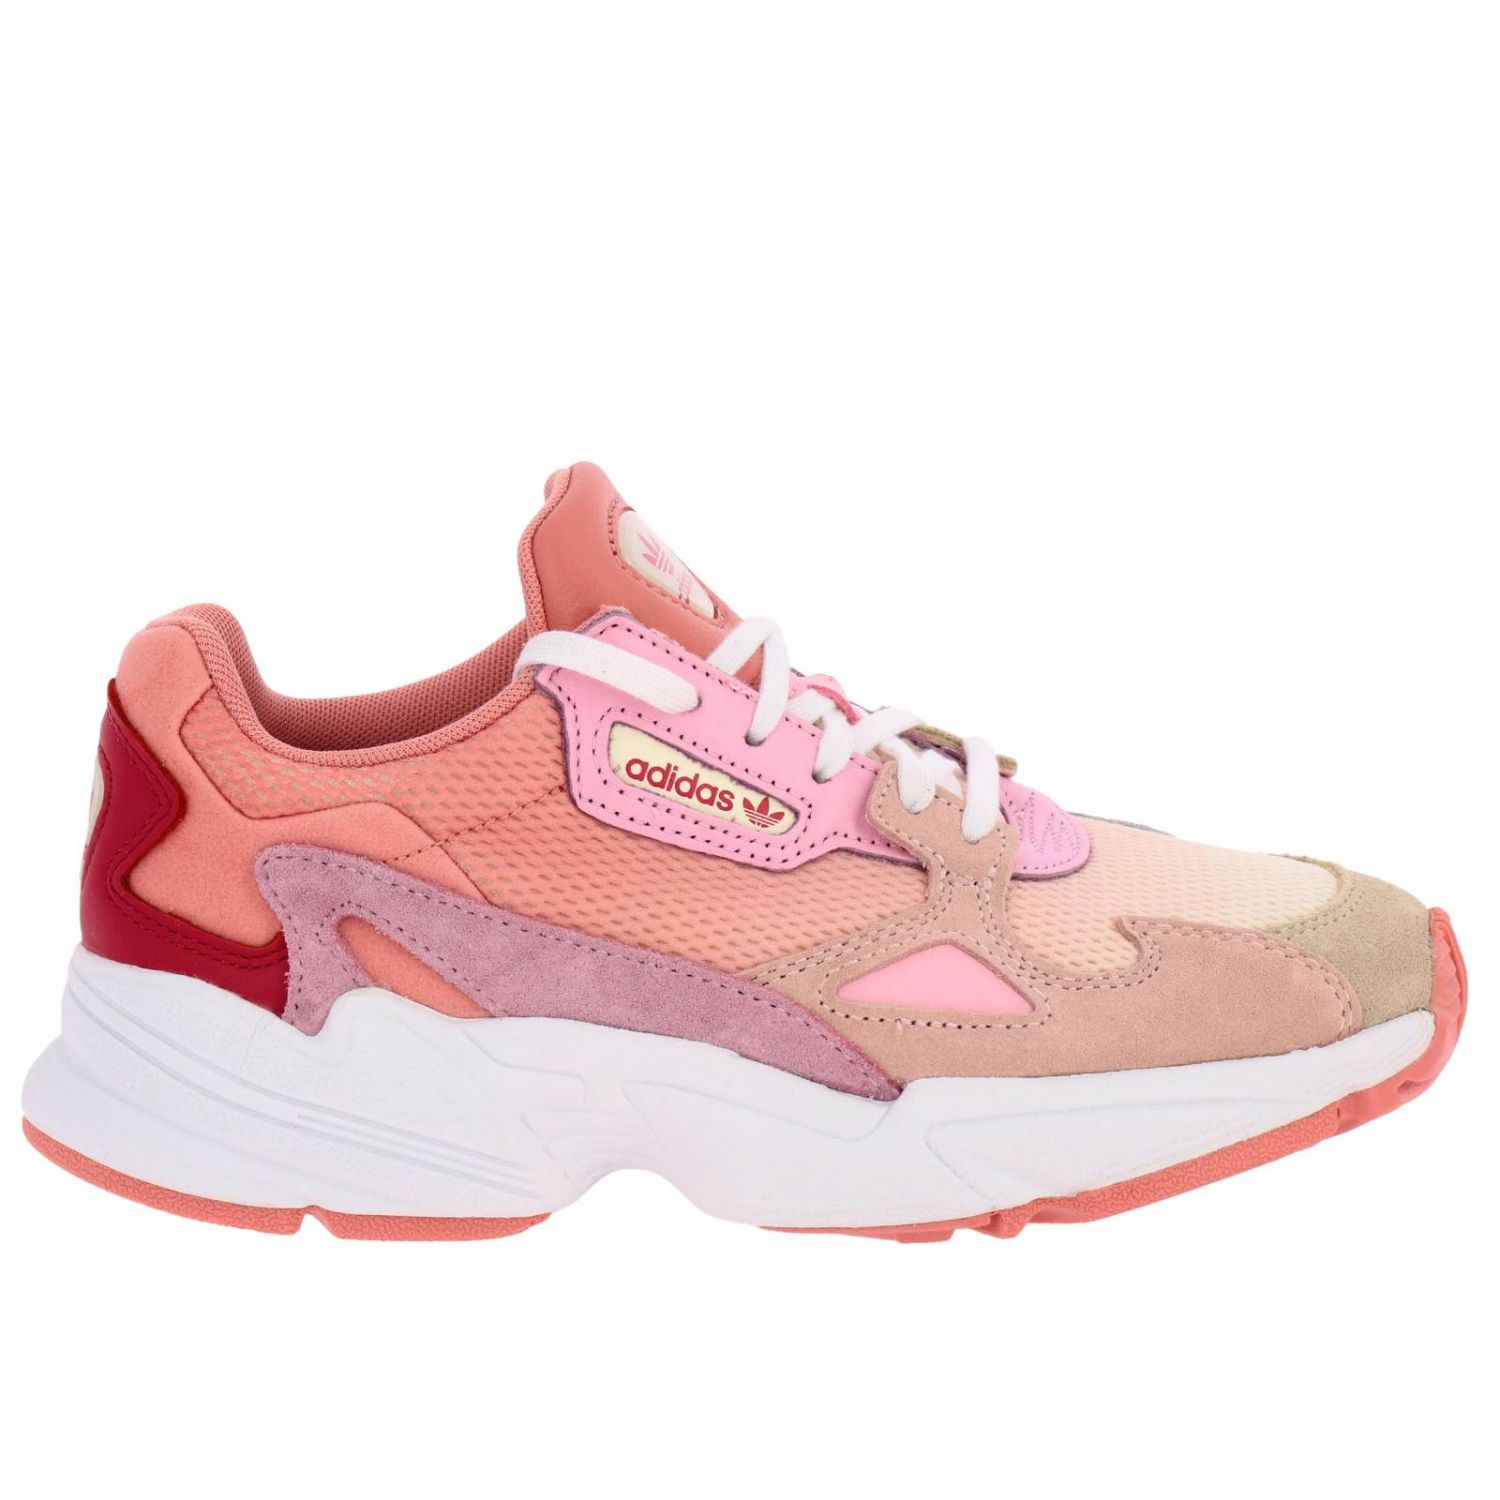 Sneakers Adidas Originals: Sneakers Falcon W Adidas Originals in rete pelle e camoscio rosa 1